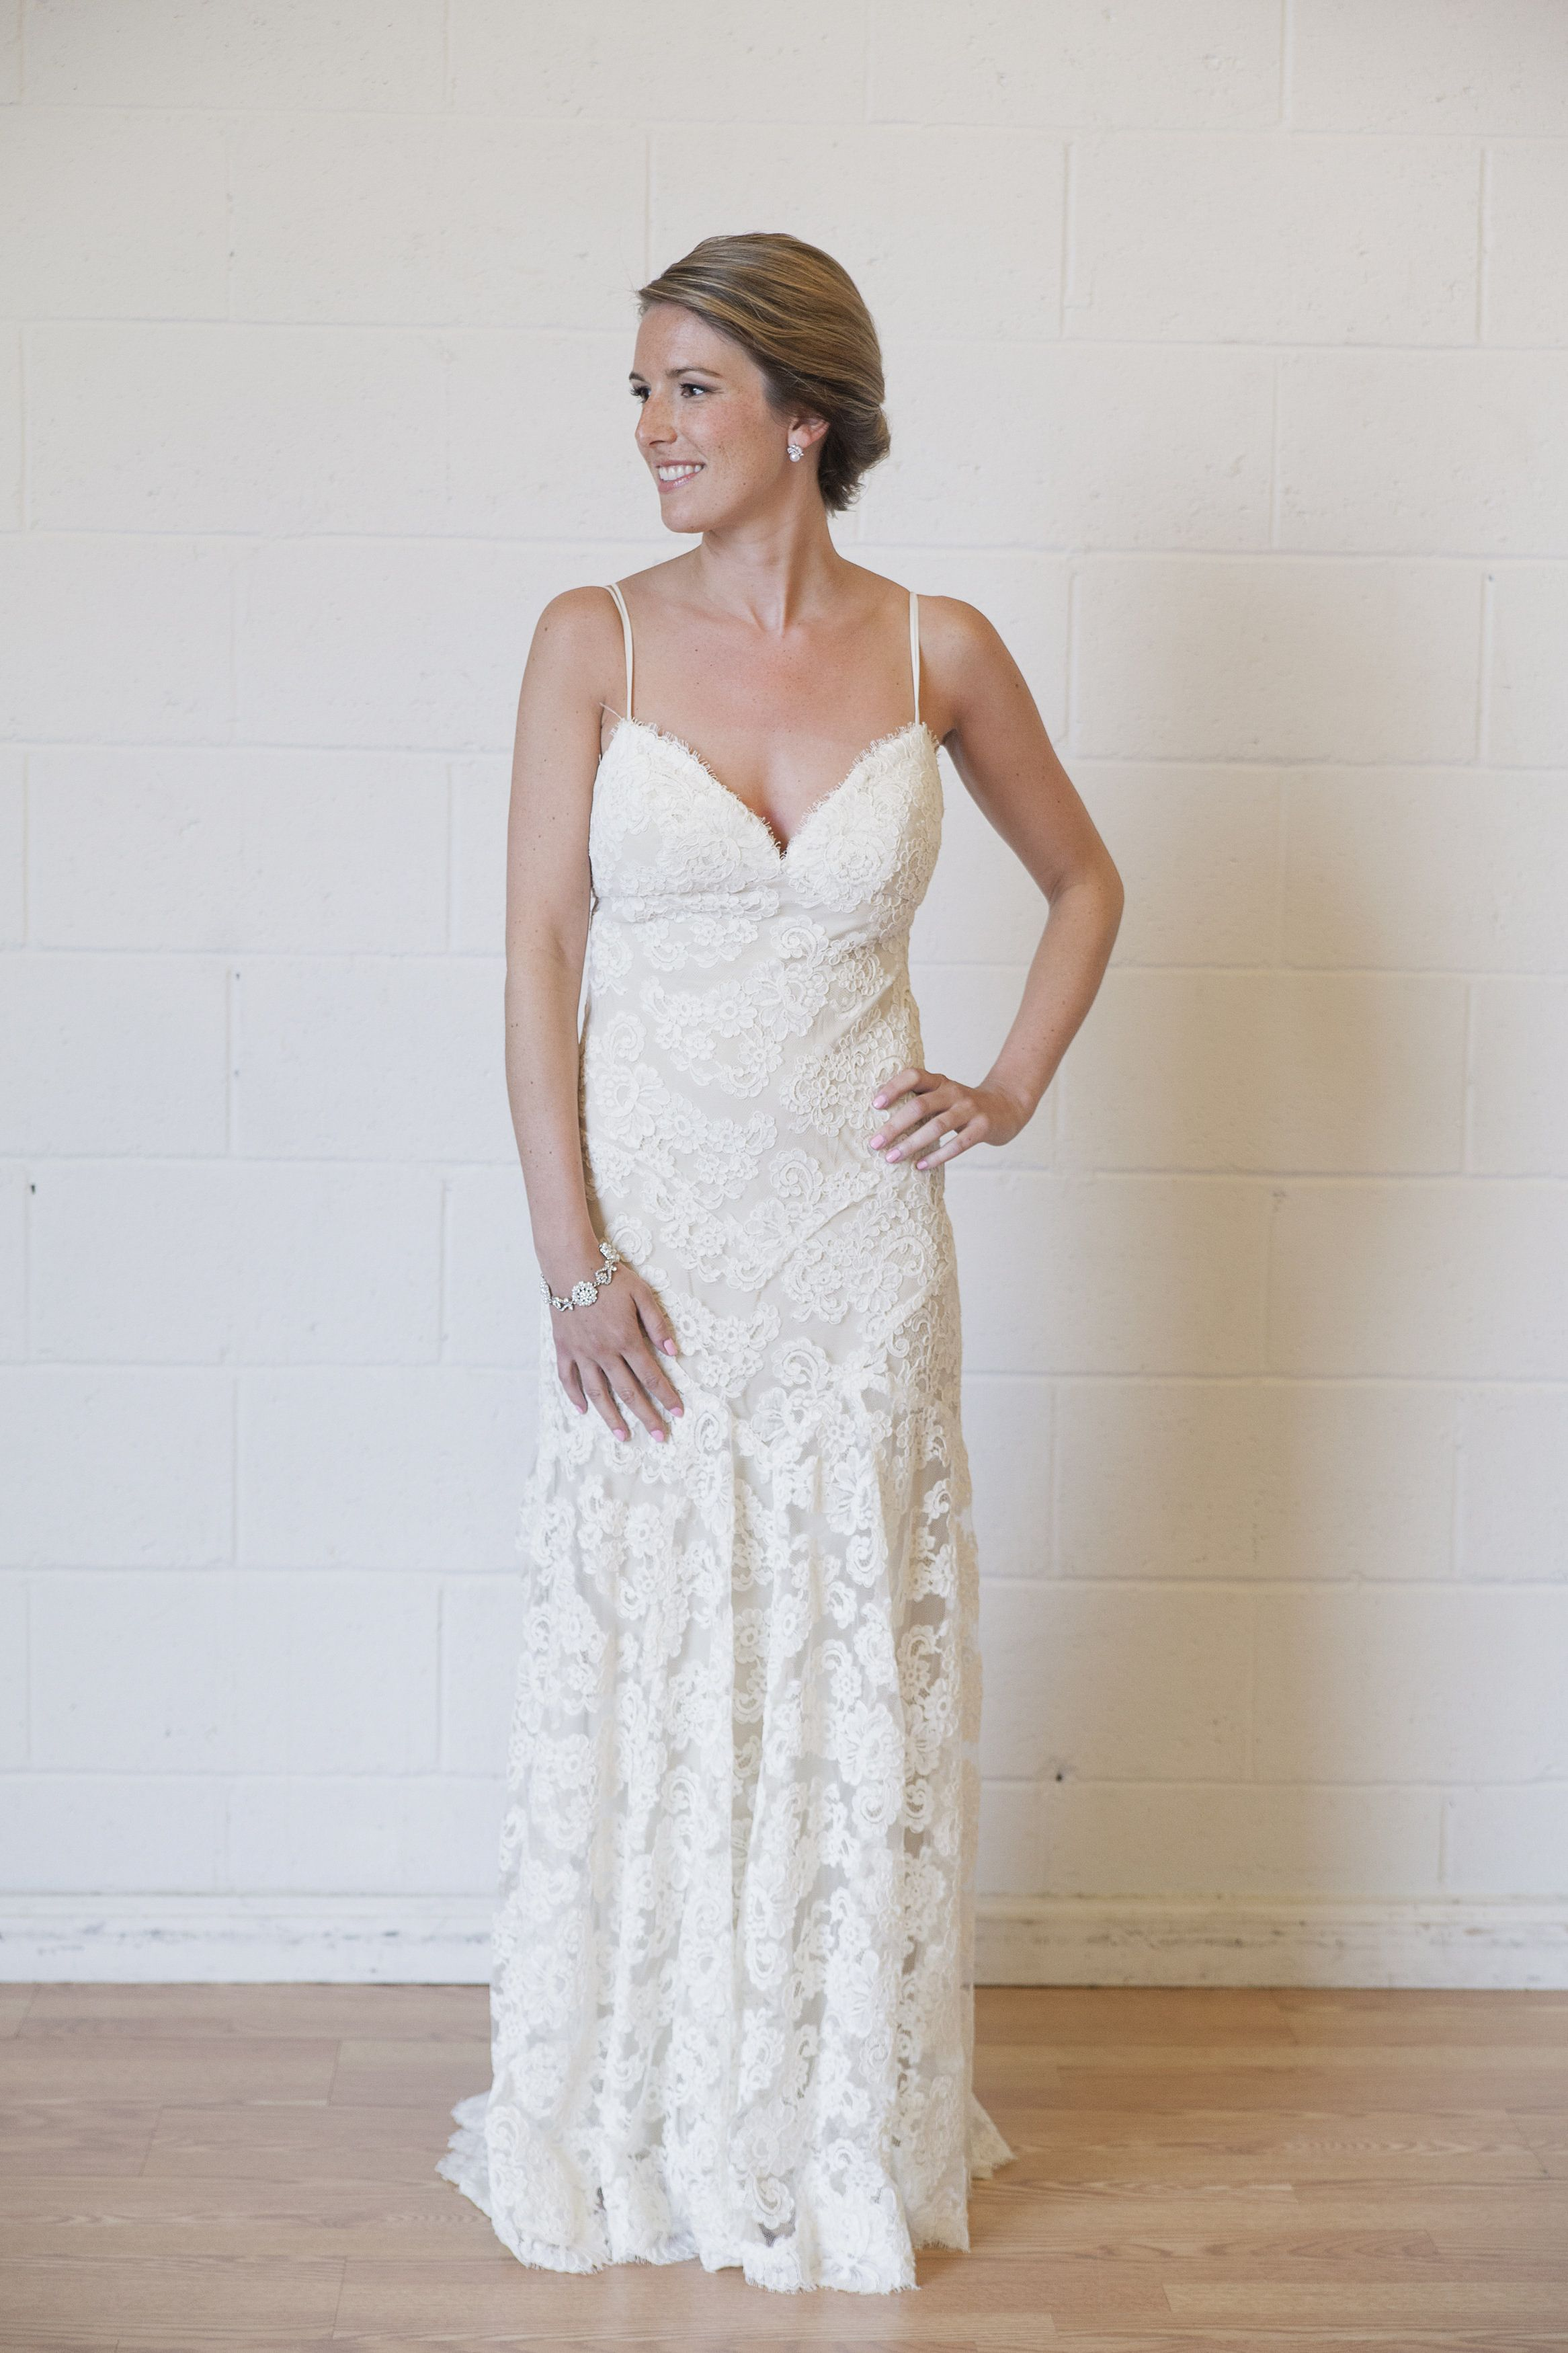 Rent Or Buy Monique Lhuillier Wedding Dresses Online This Exact Gown Is Available For Re Online Wedding Dress Rental Wedding Dresses Wedding Dresses For Sale